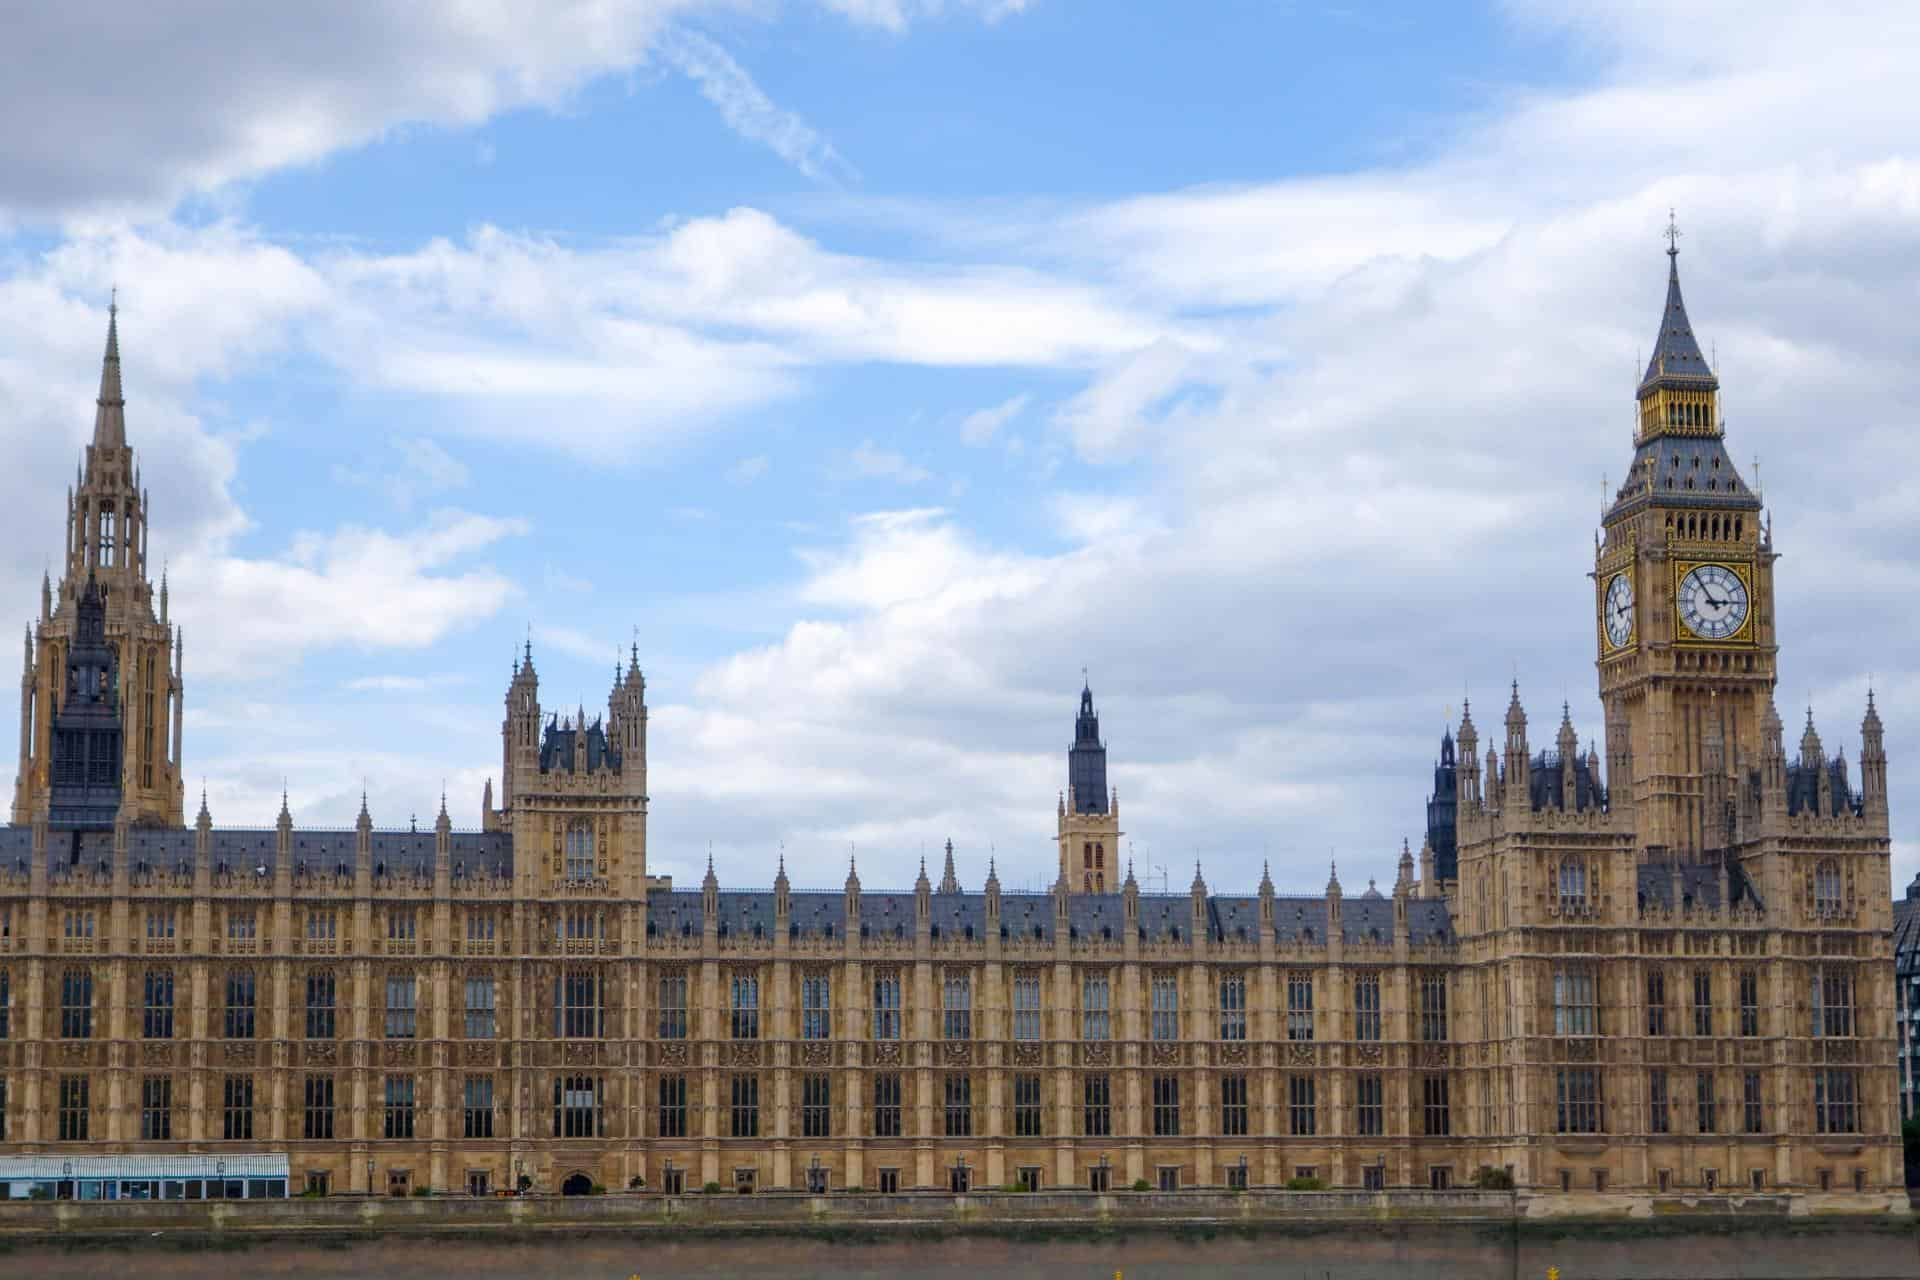 London loves: Houses of Parliament afternoon tea and tour ...